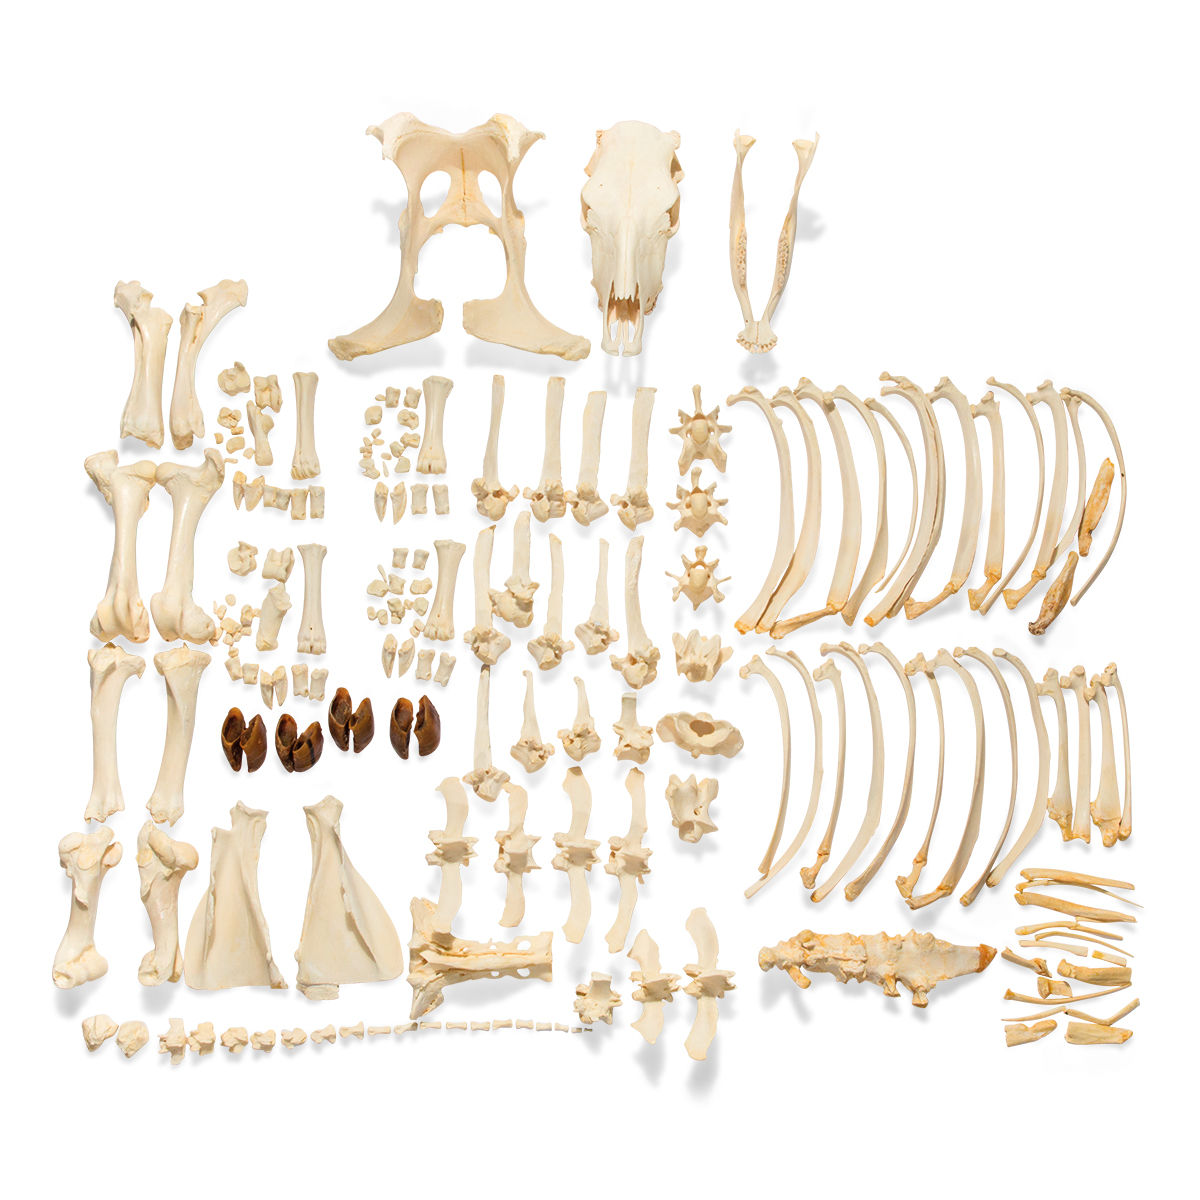 Bovine Skeleton Bos Taurus Without Horns Disarticulated